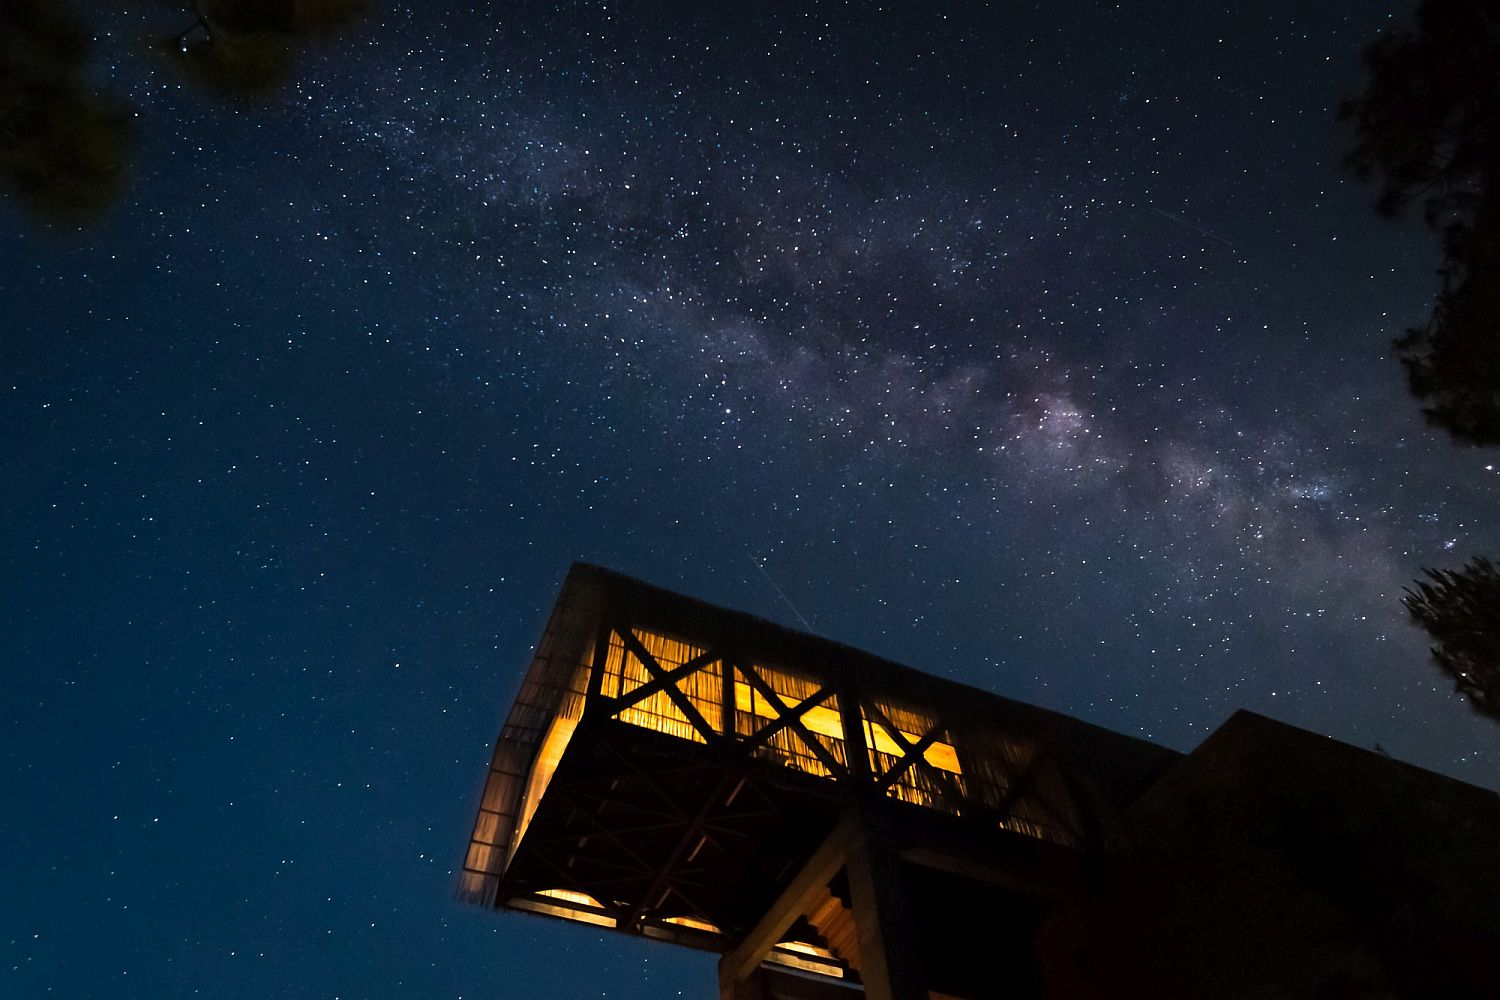 Clear night sky at the Himalayan hotel with the Milky Way